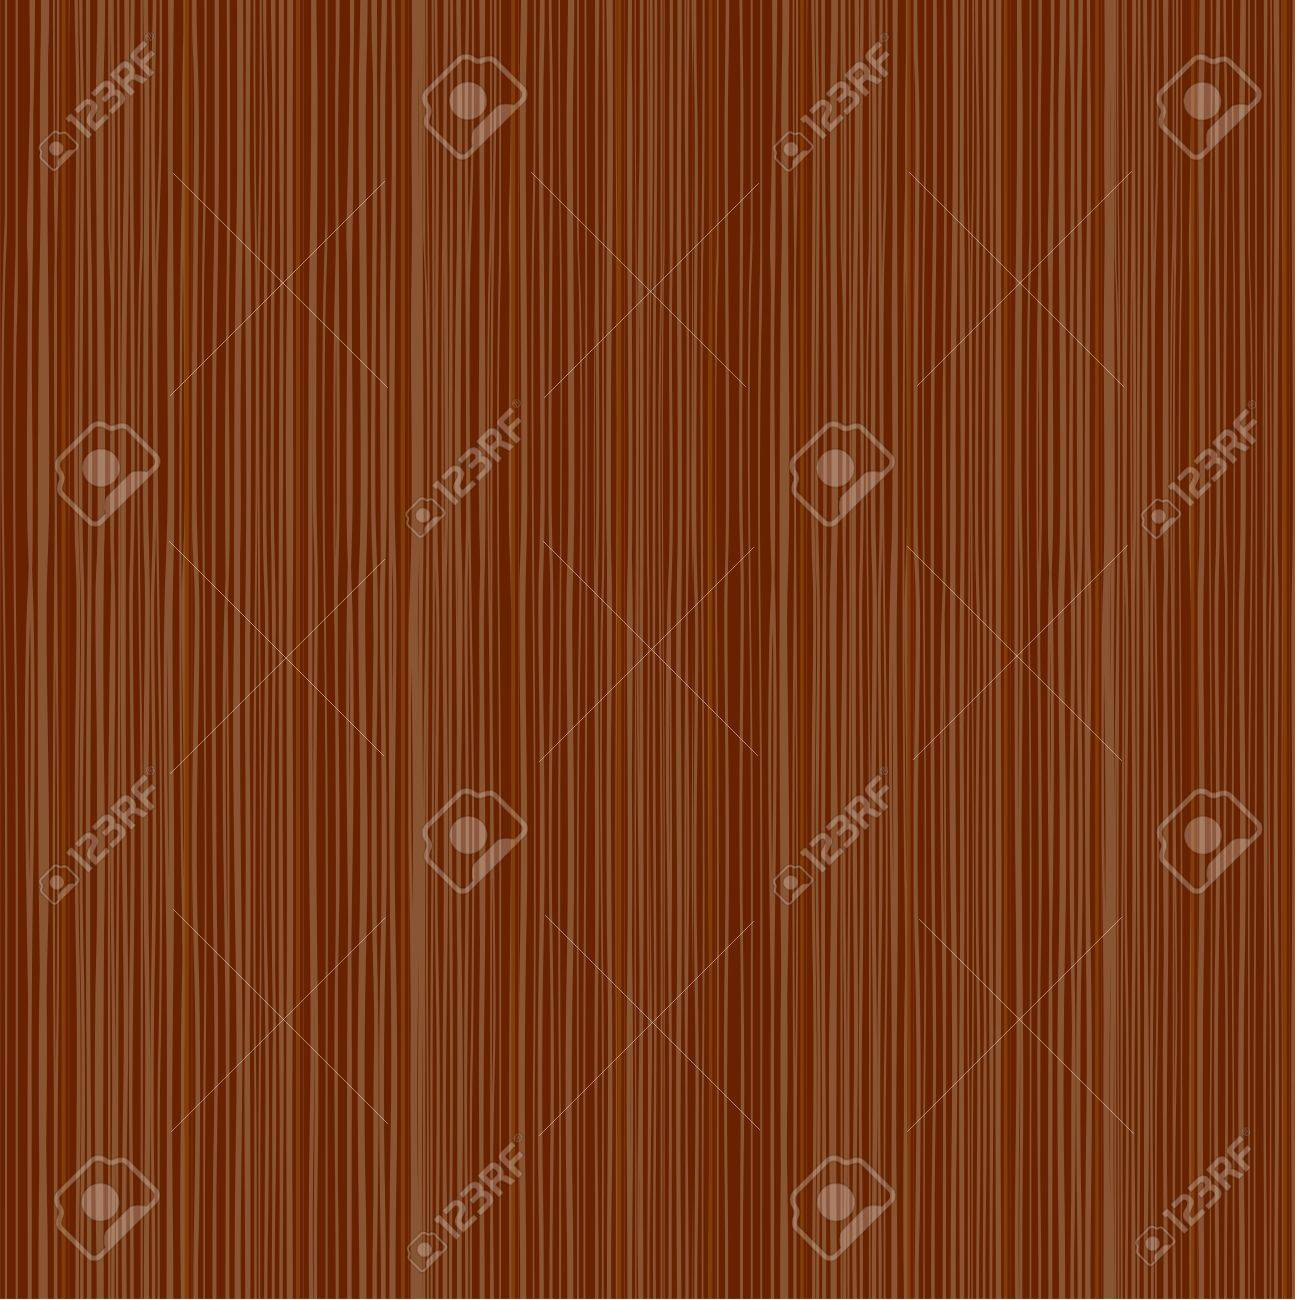 Brown wood pattern or texture. Vector background Stock Vector - 10366260